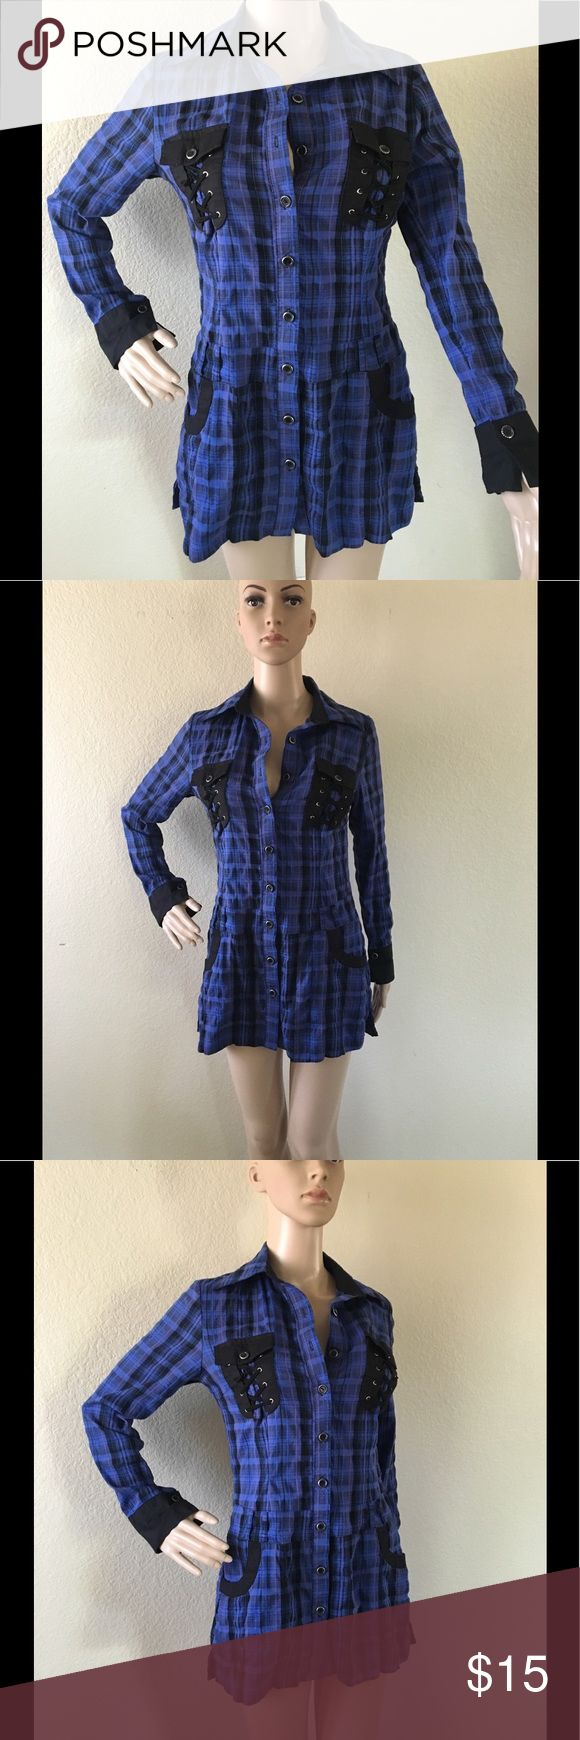 Stunning plaid button down shirt Blue and black with hints of purple, plaid shirt with metallic trim buttons and fantastic black, shoe-string laced chest pockets. Listed as 38, wears like a Small. Baran Collection Tops Button Down Shirts